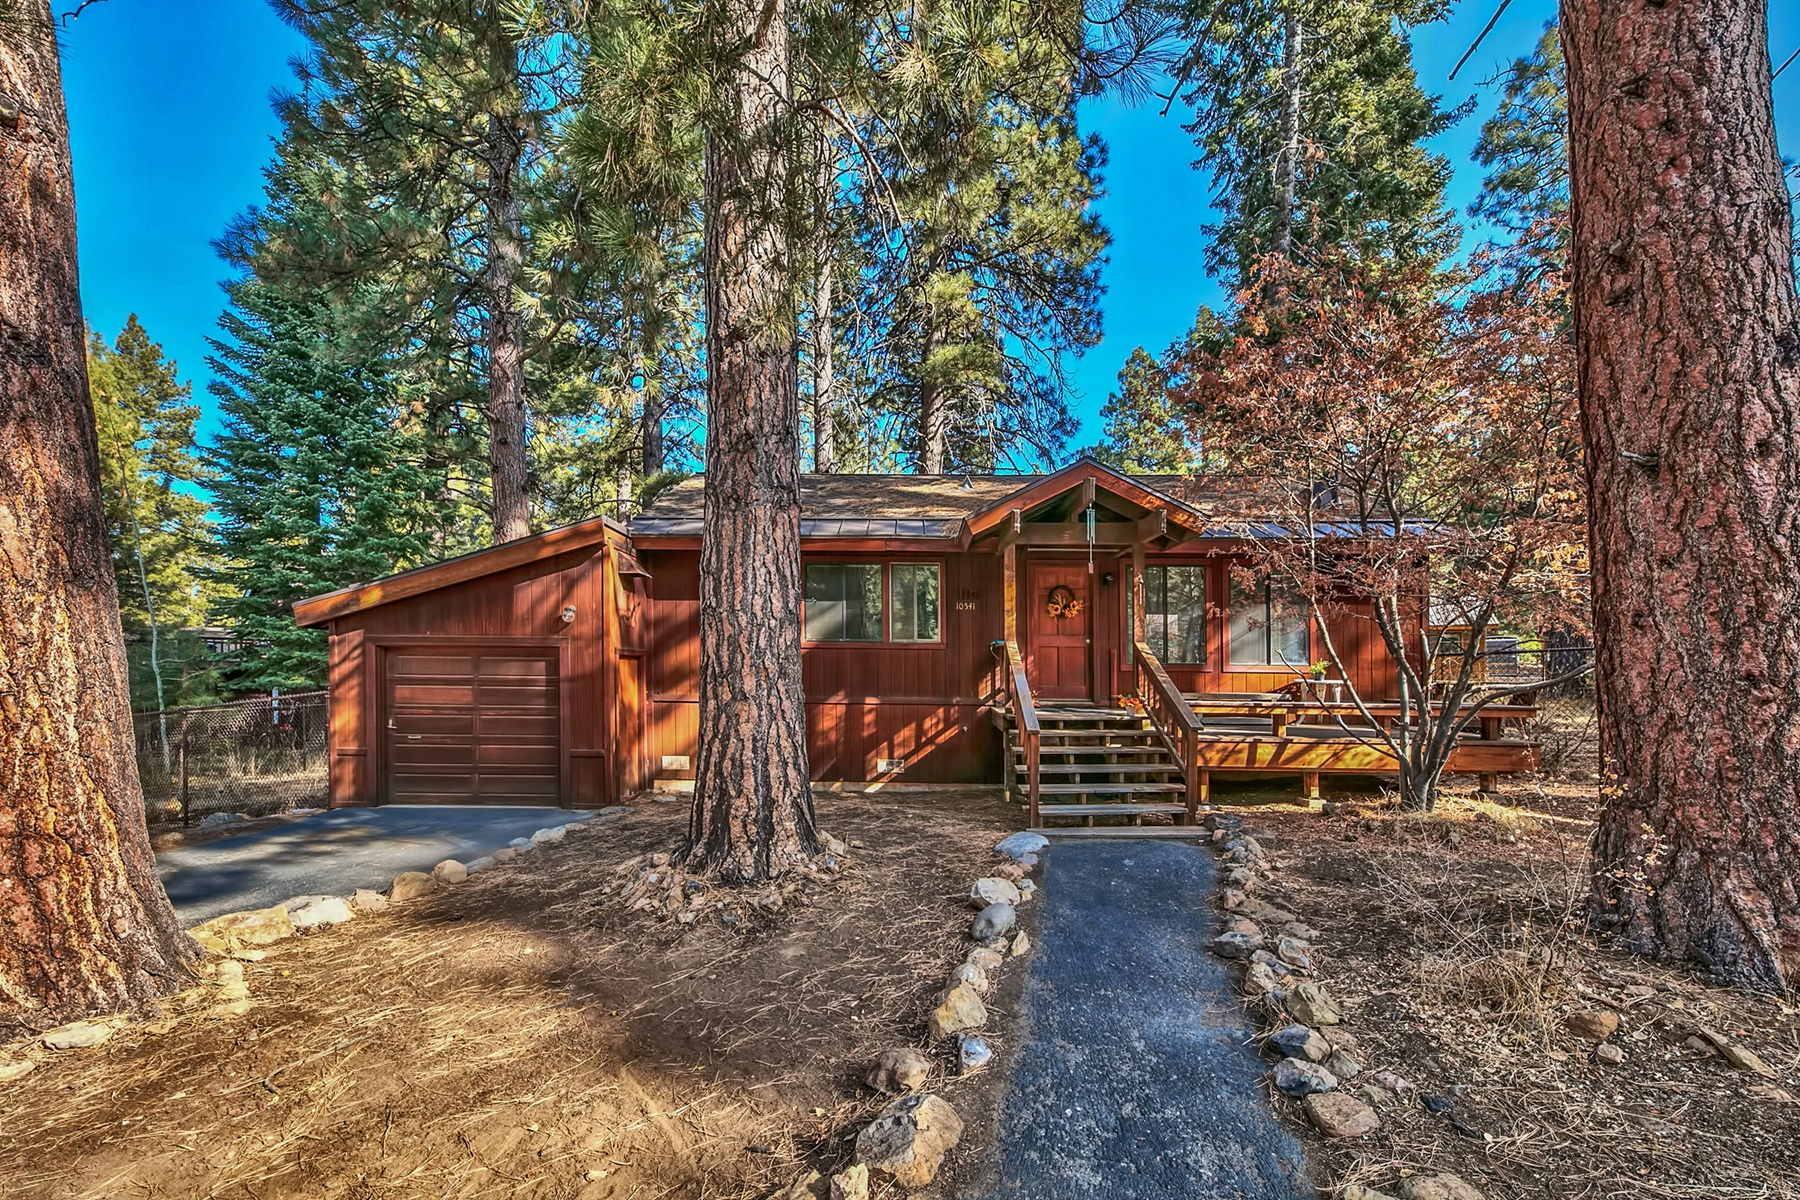 Single Family Home for Active at 10541 Saxon Way, Truckee, Way 10541 Saxon Way Truckee, California 96161 United States